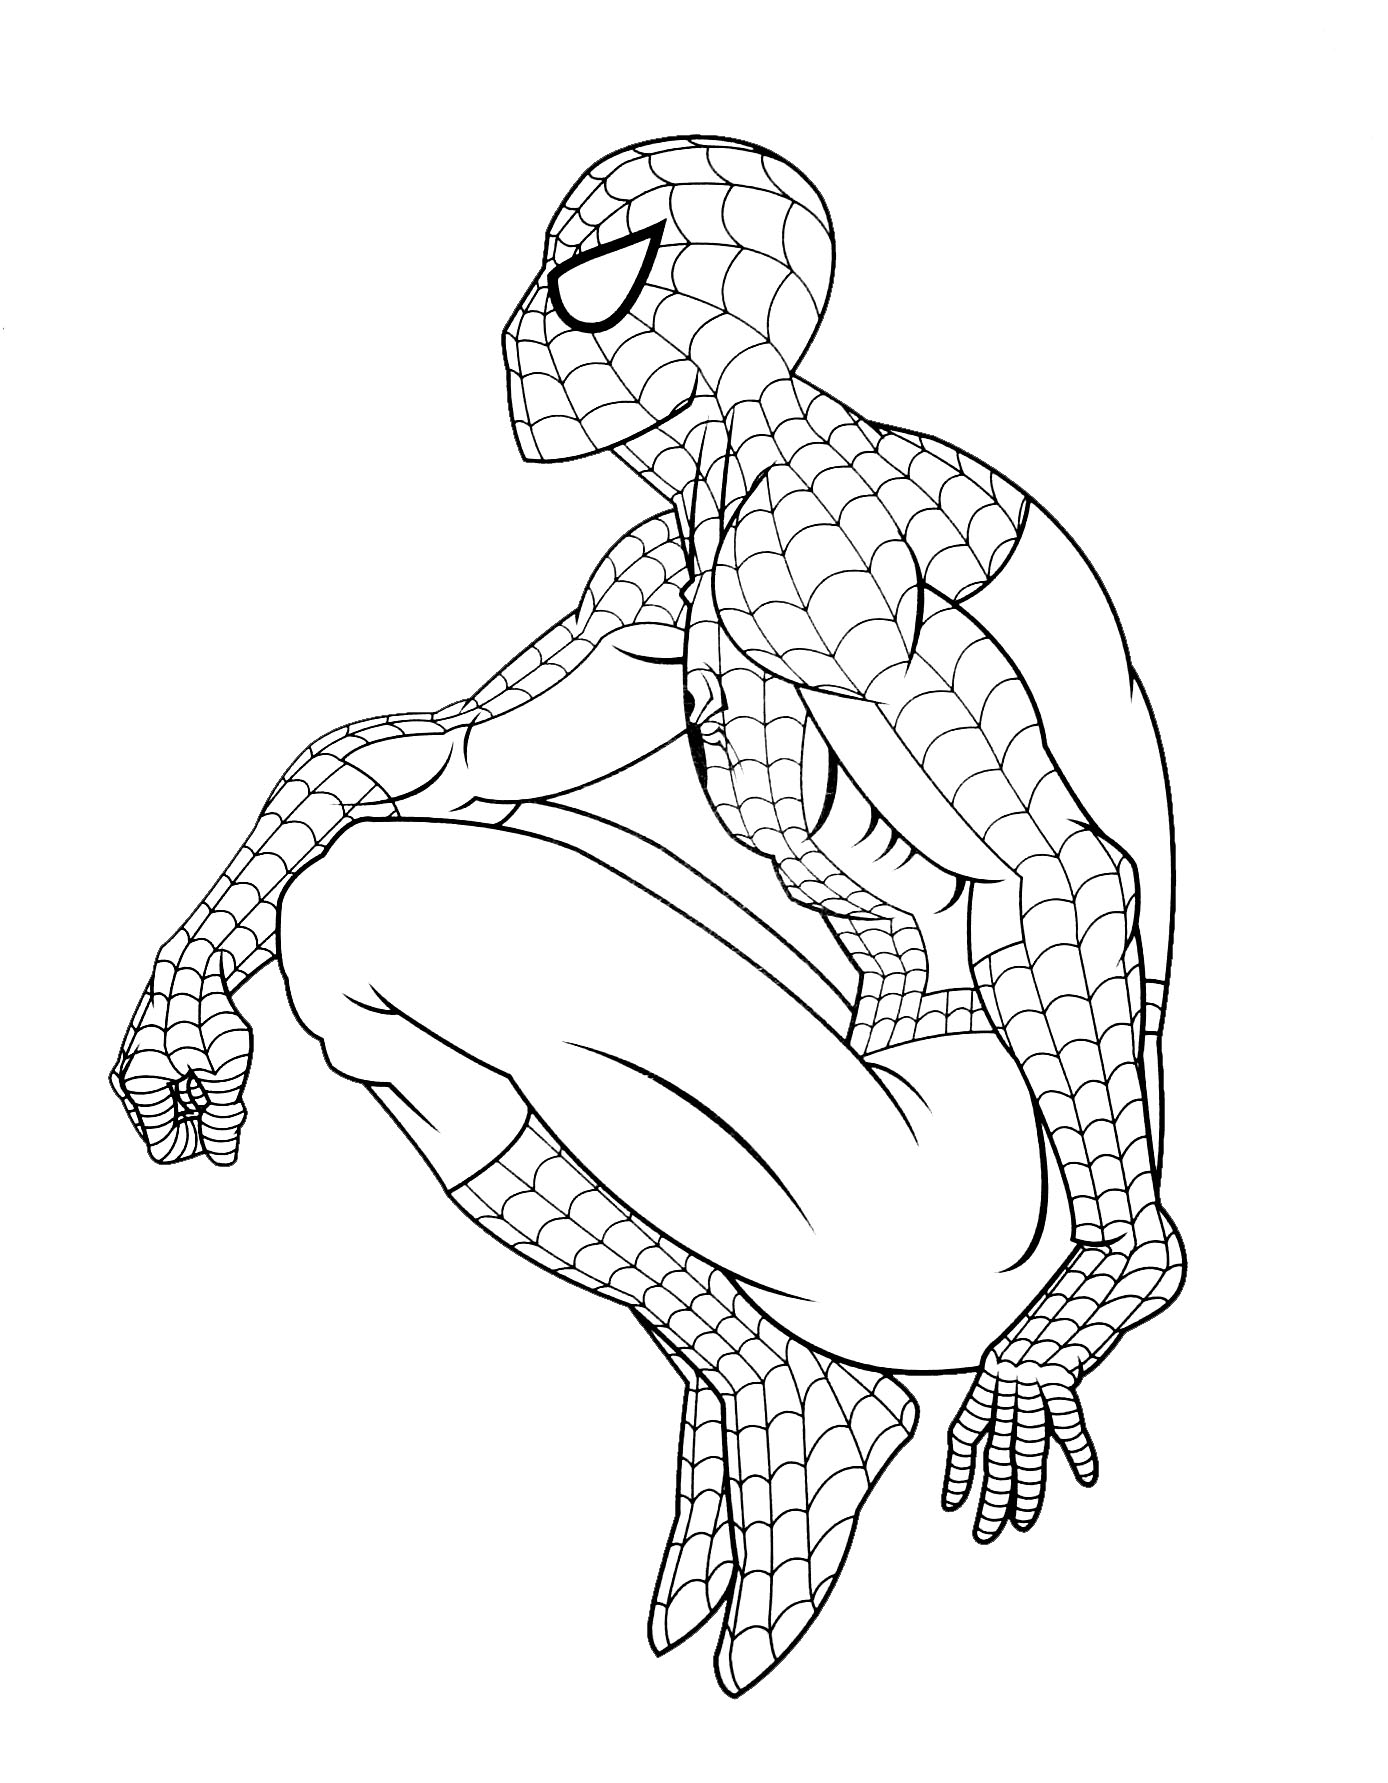 Spiderman gratuit 4 coloriage spiderman coloriages pour enfants - Photo de spiderman a imprimer gratuit ...